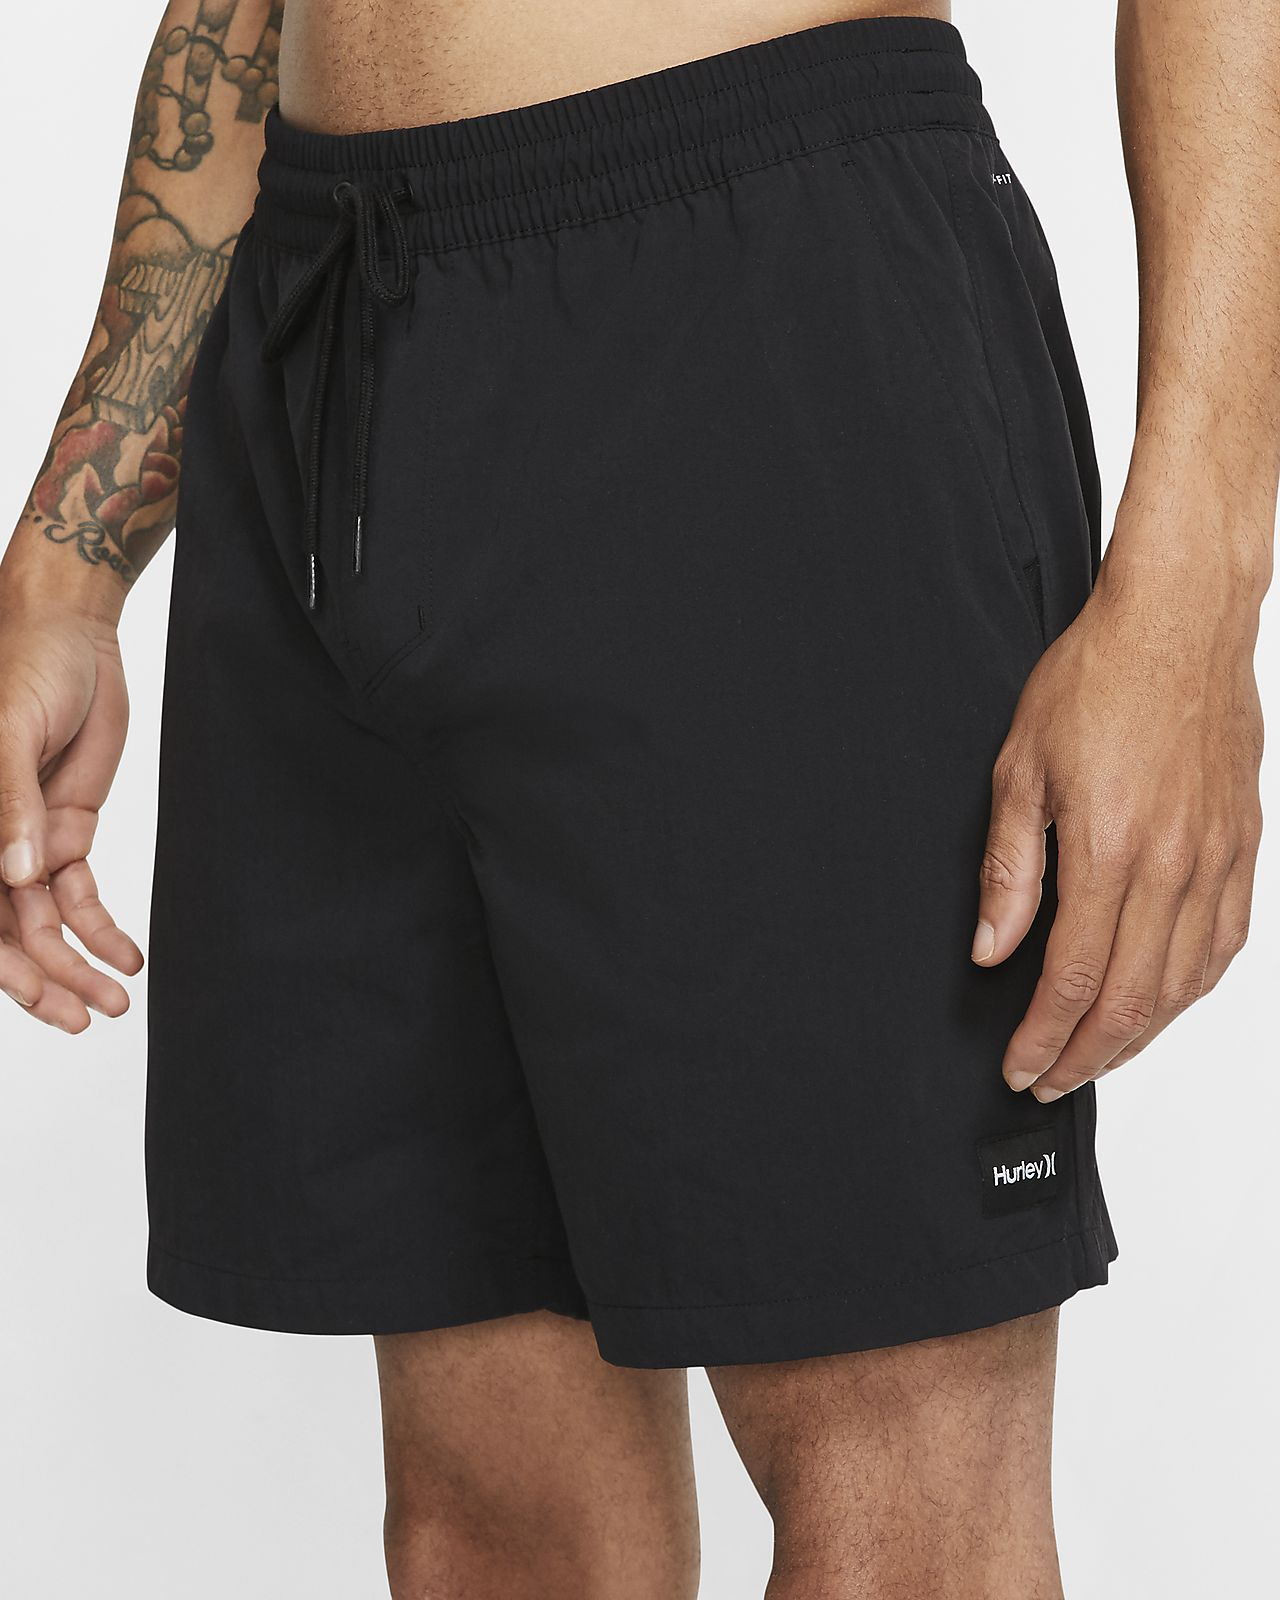 Hurley Dri-FIT Convoy Volley Men's 43cm approx. Shorts